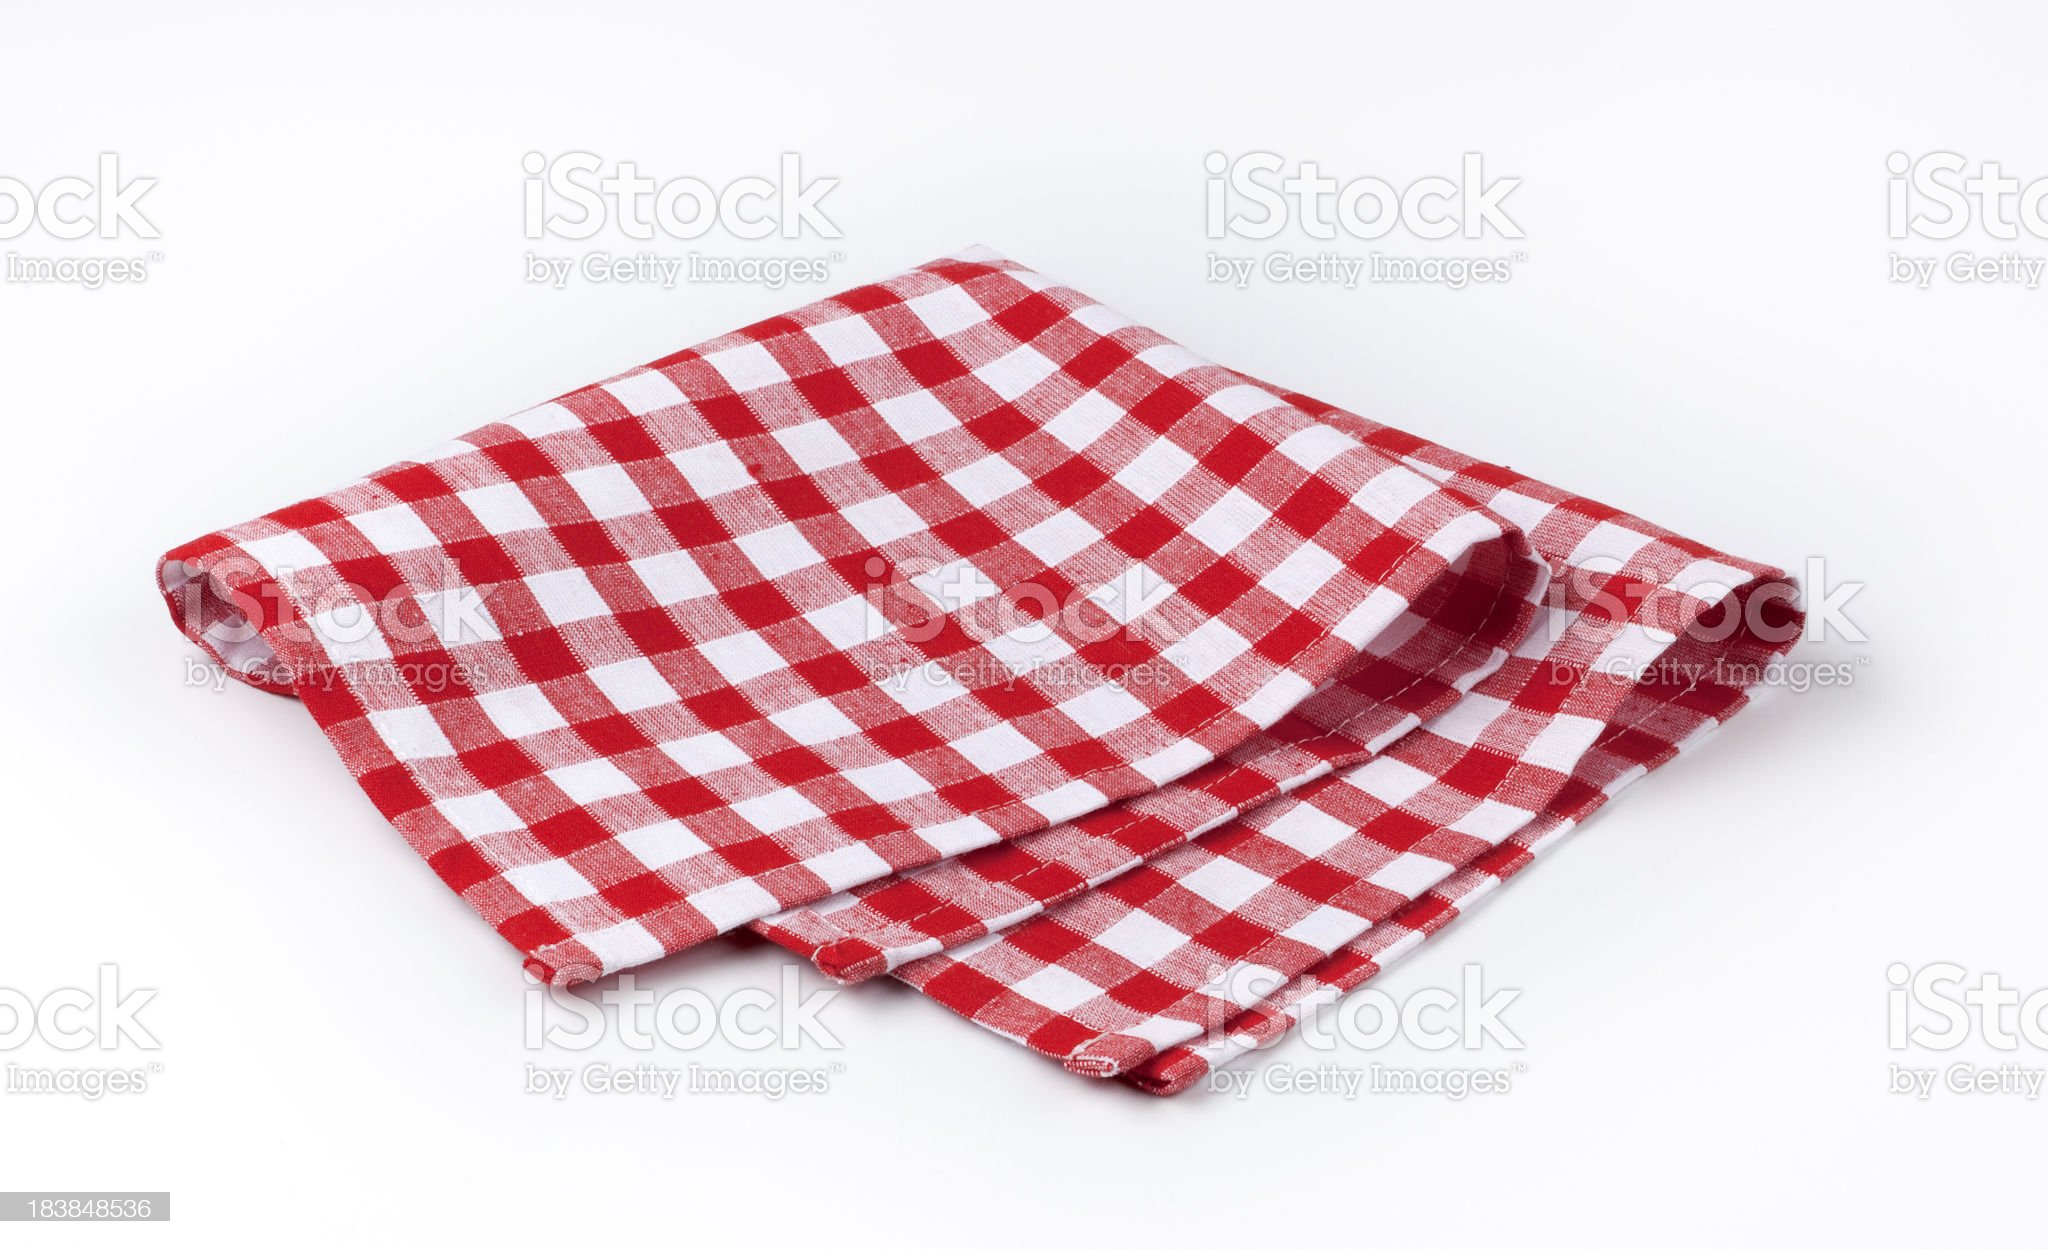 A red and white checkered cloth napkin royalty-free stock photo